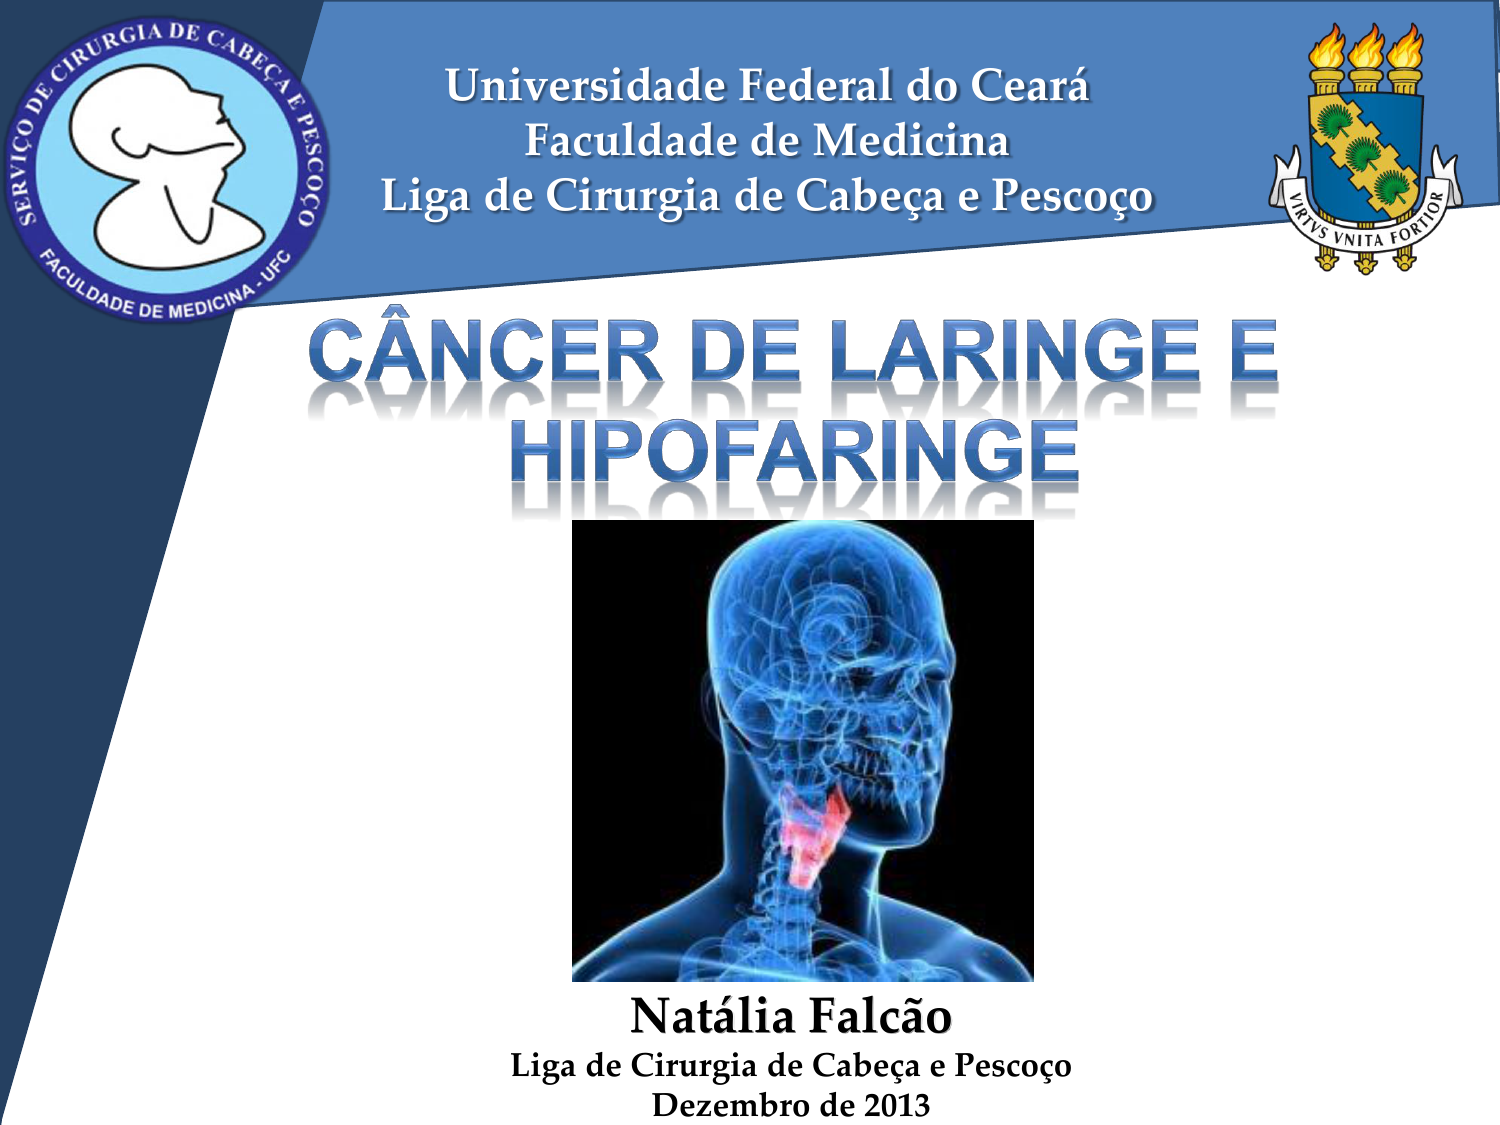 que es cancer hipofaringe cancer colon que manger